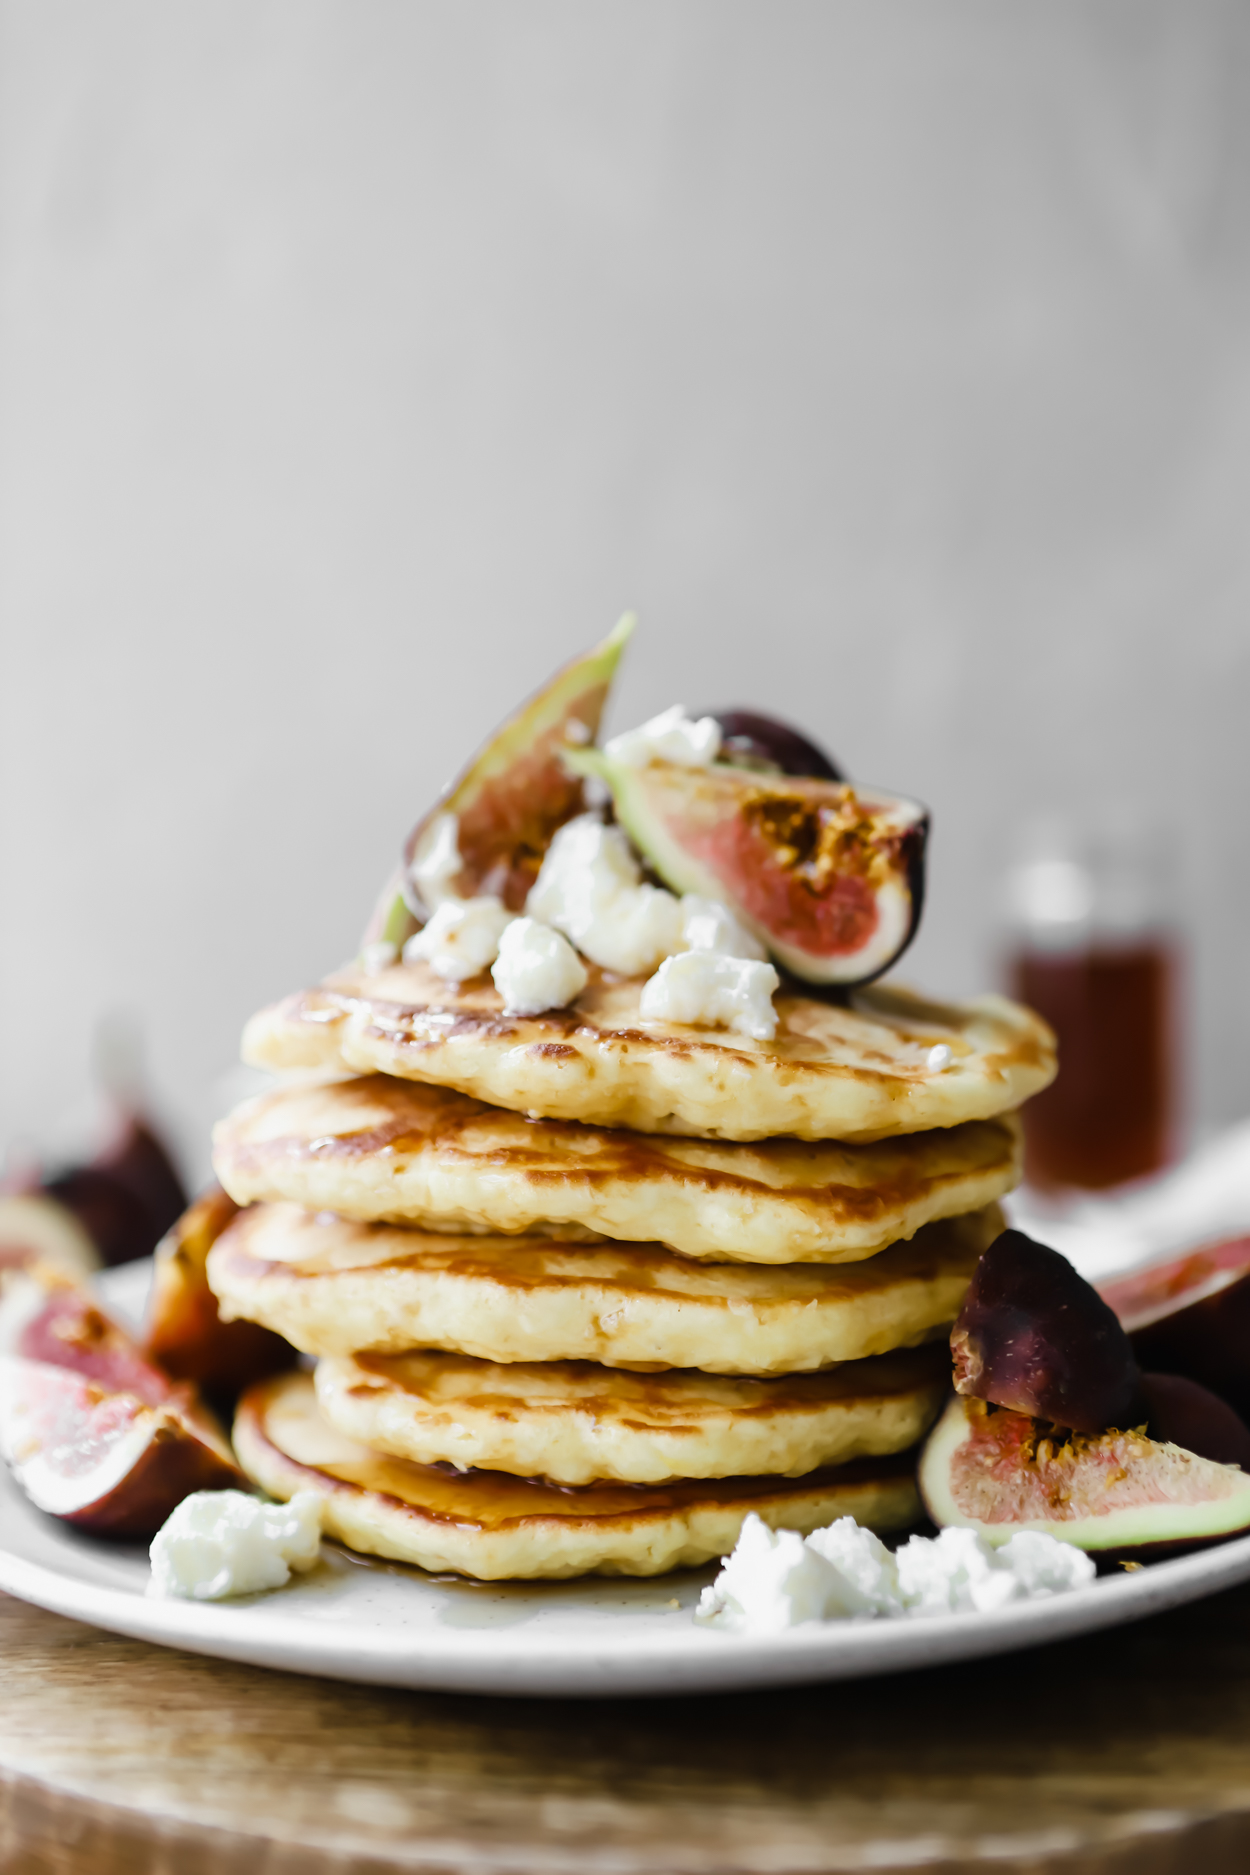 A stack of fluffy pancakes on a plate with fresh figs and ricotta cheese